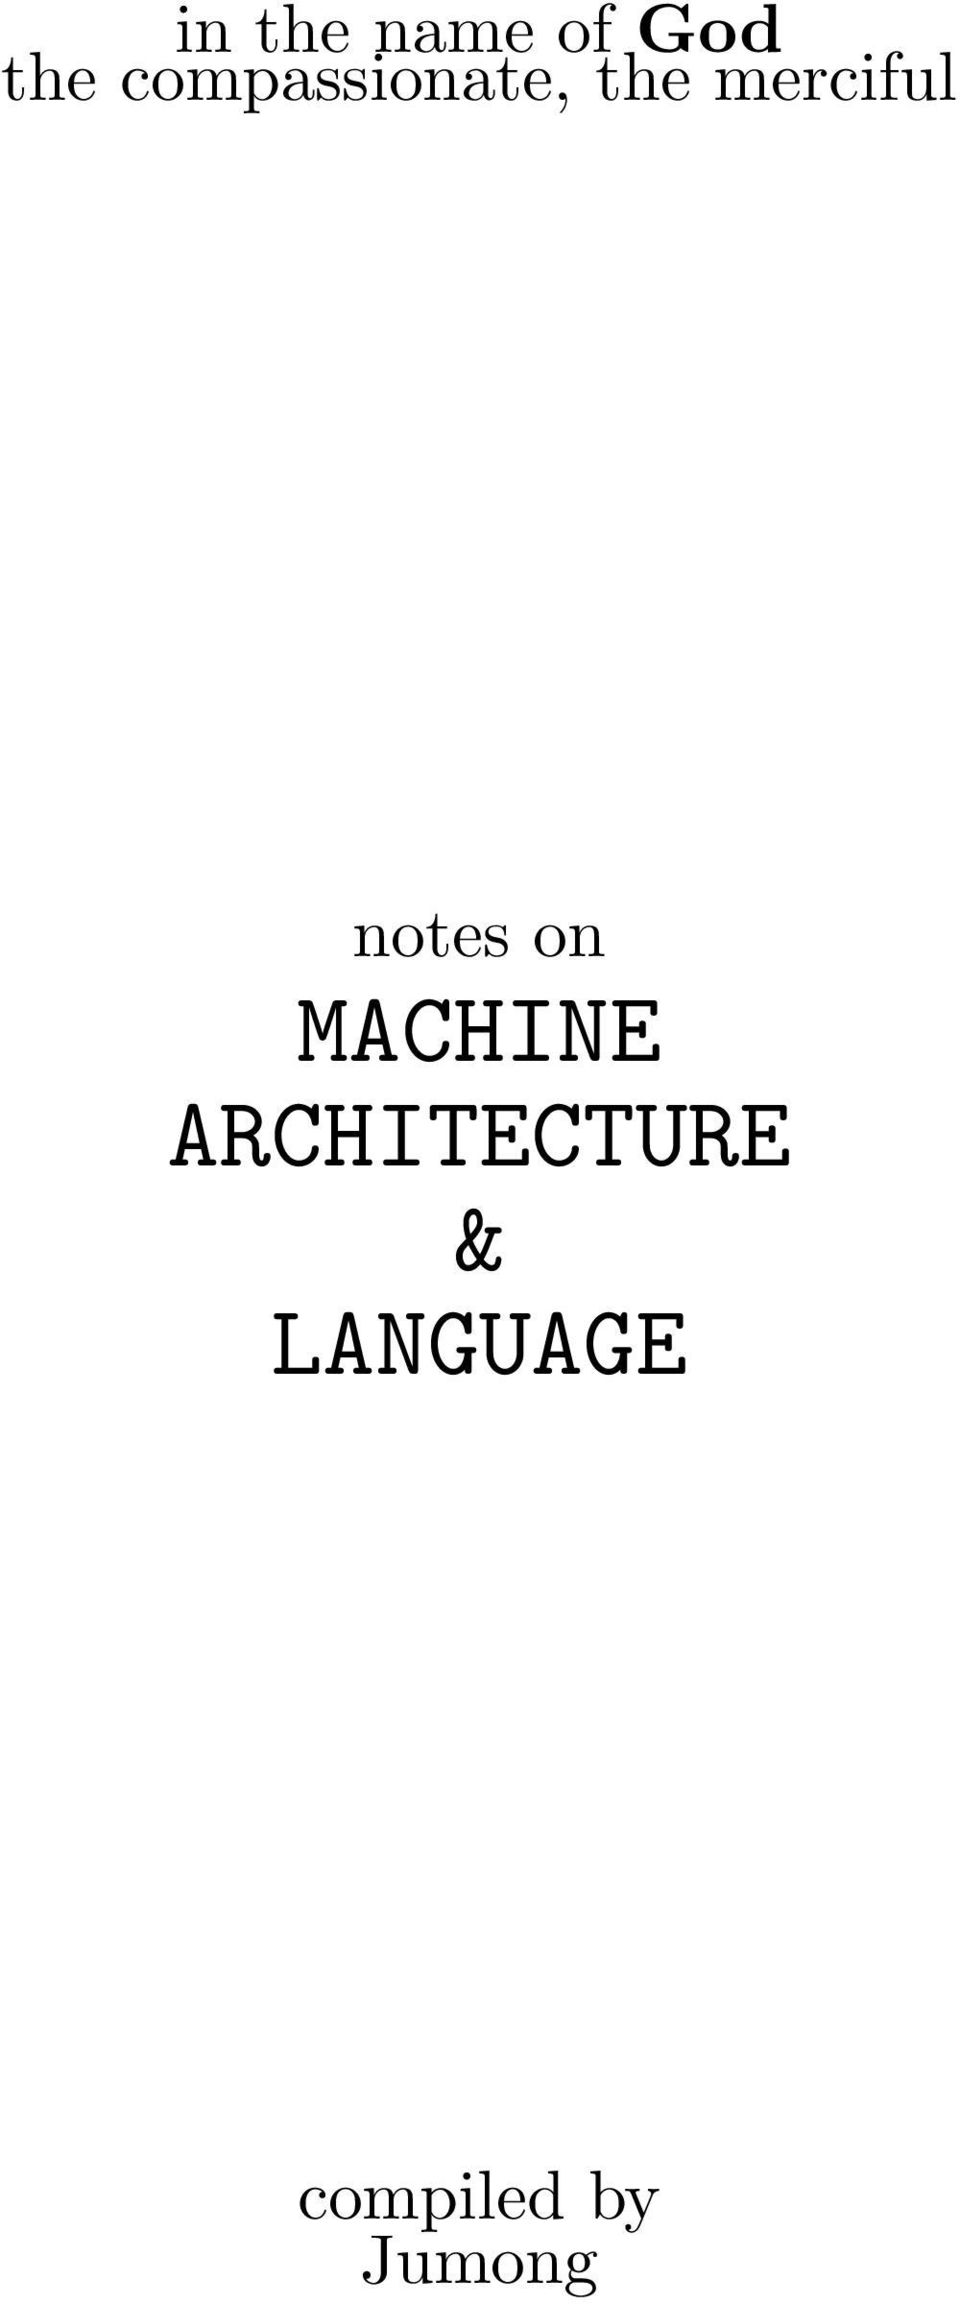 notes on MACHINE